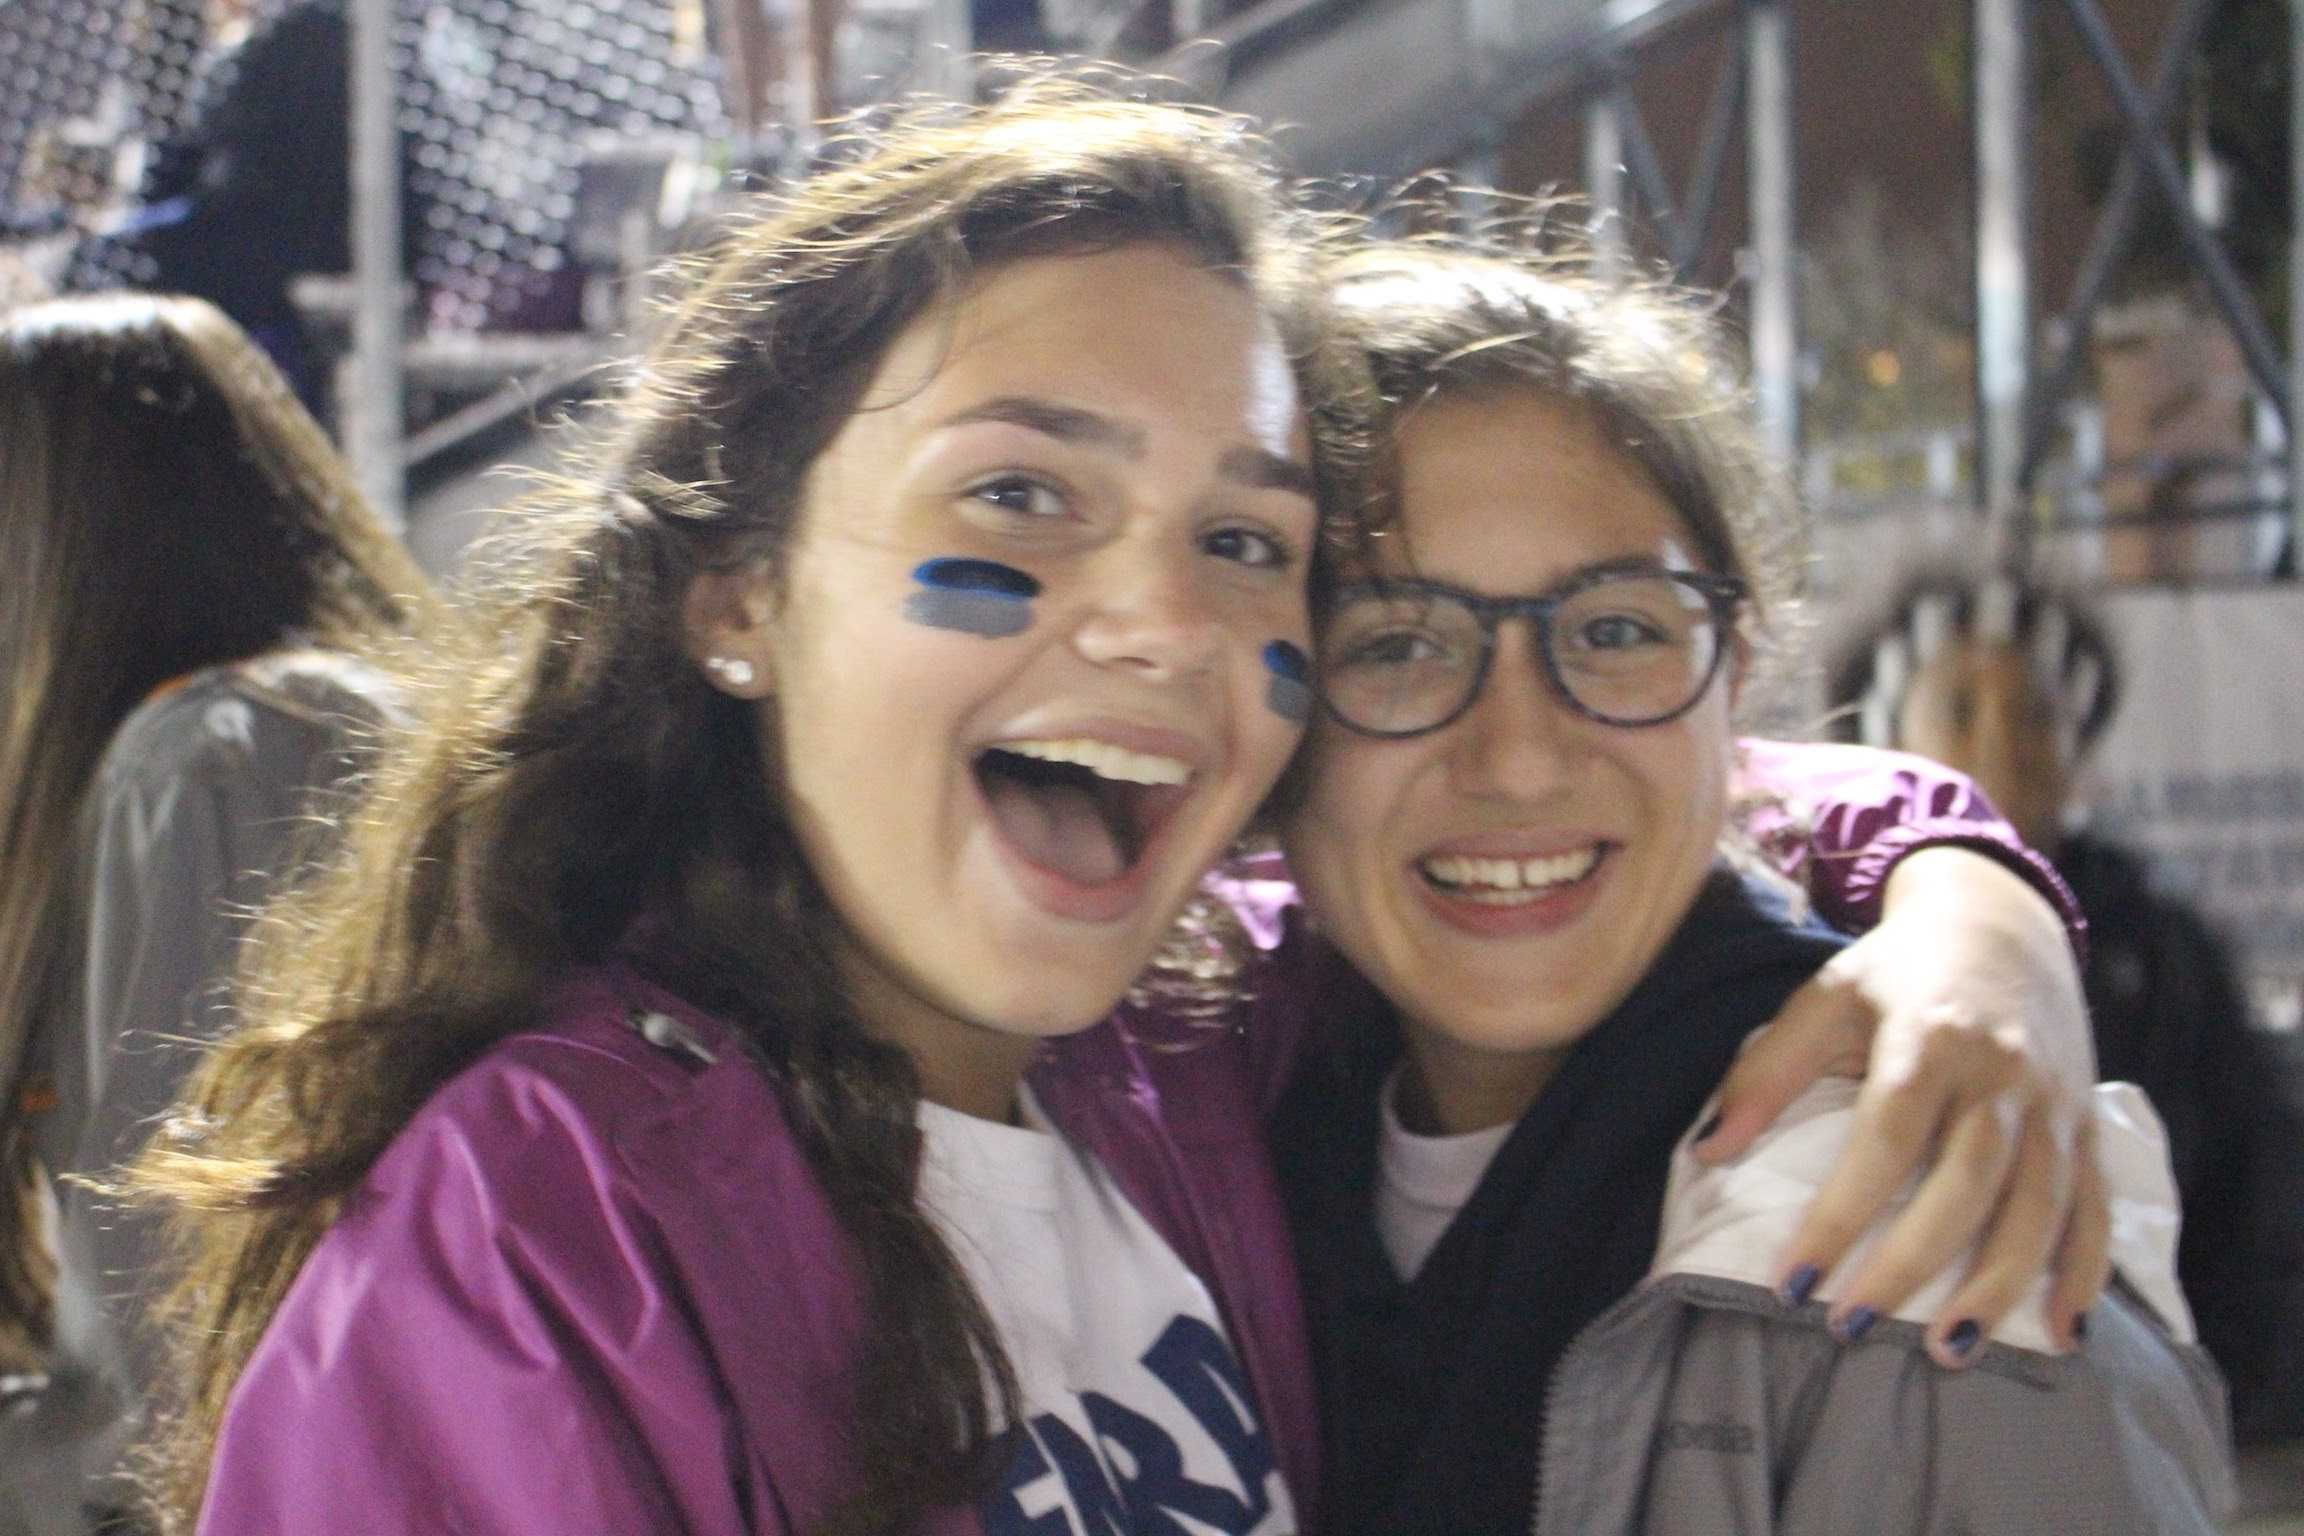 Two football fans at the homecoming game